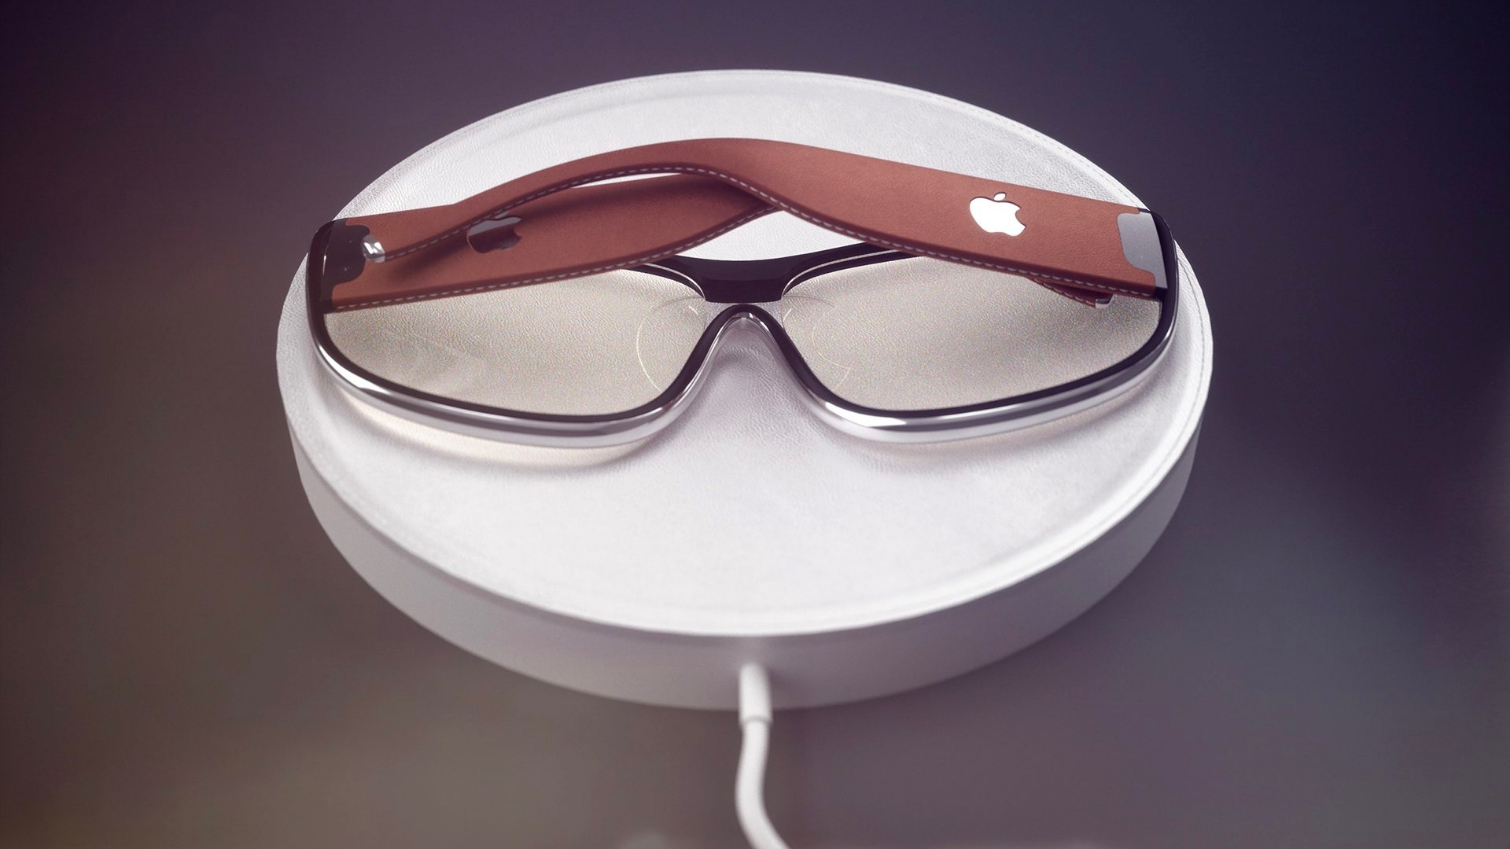 iOS 13 code clues about Apple AR headset